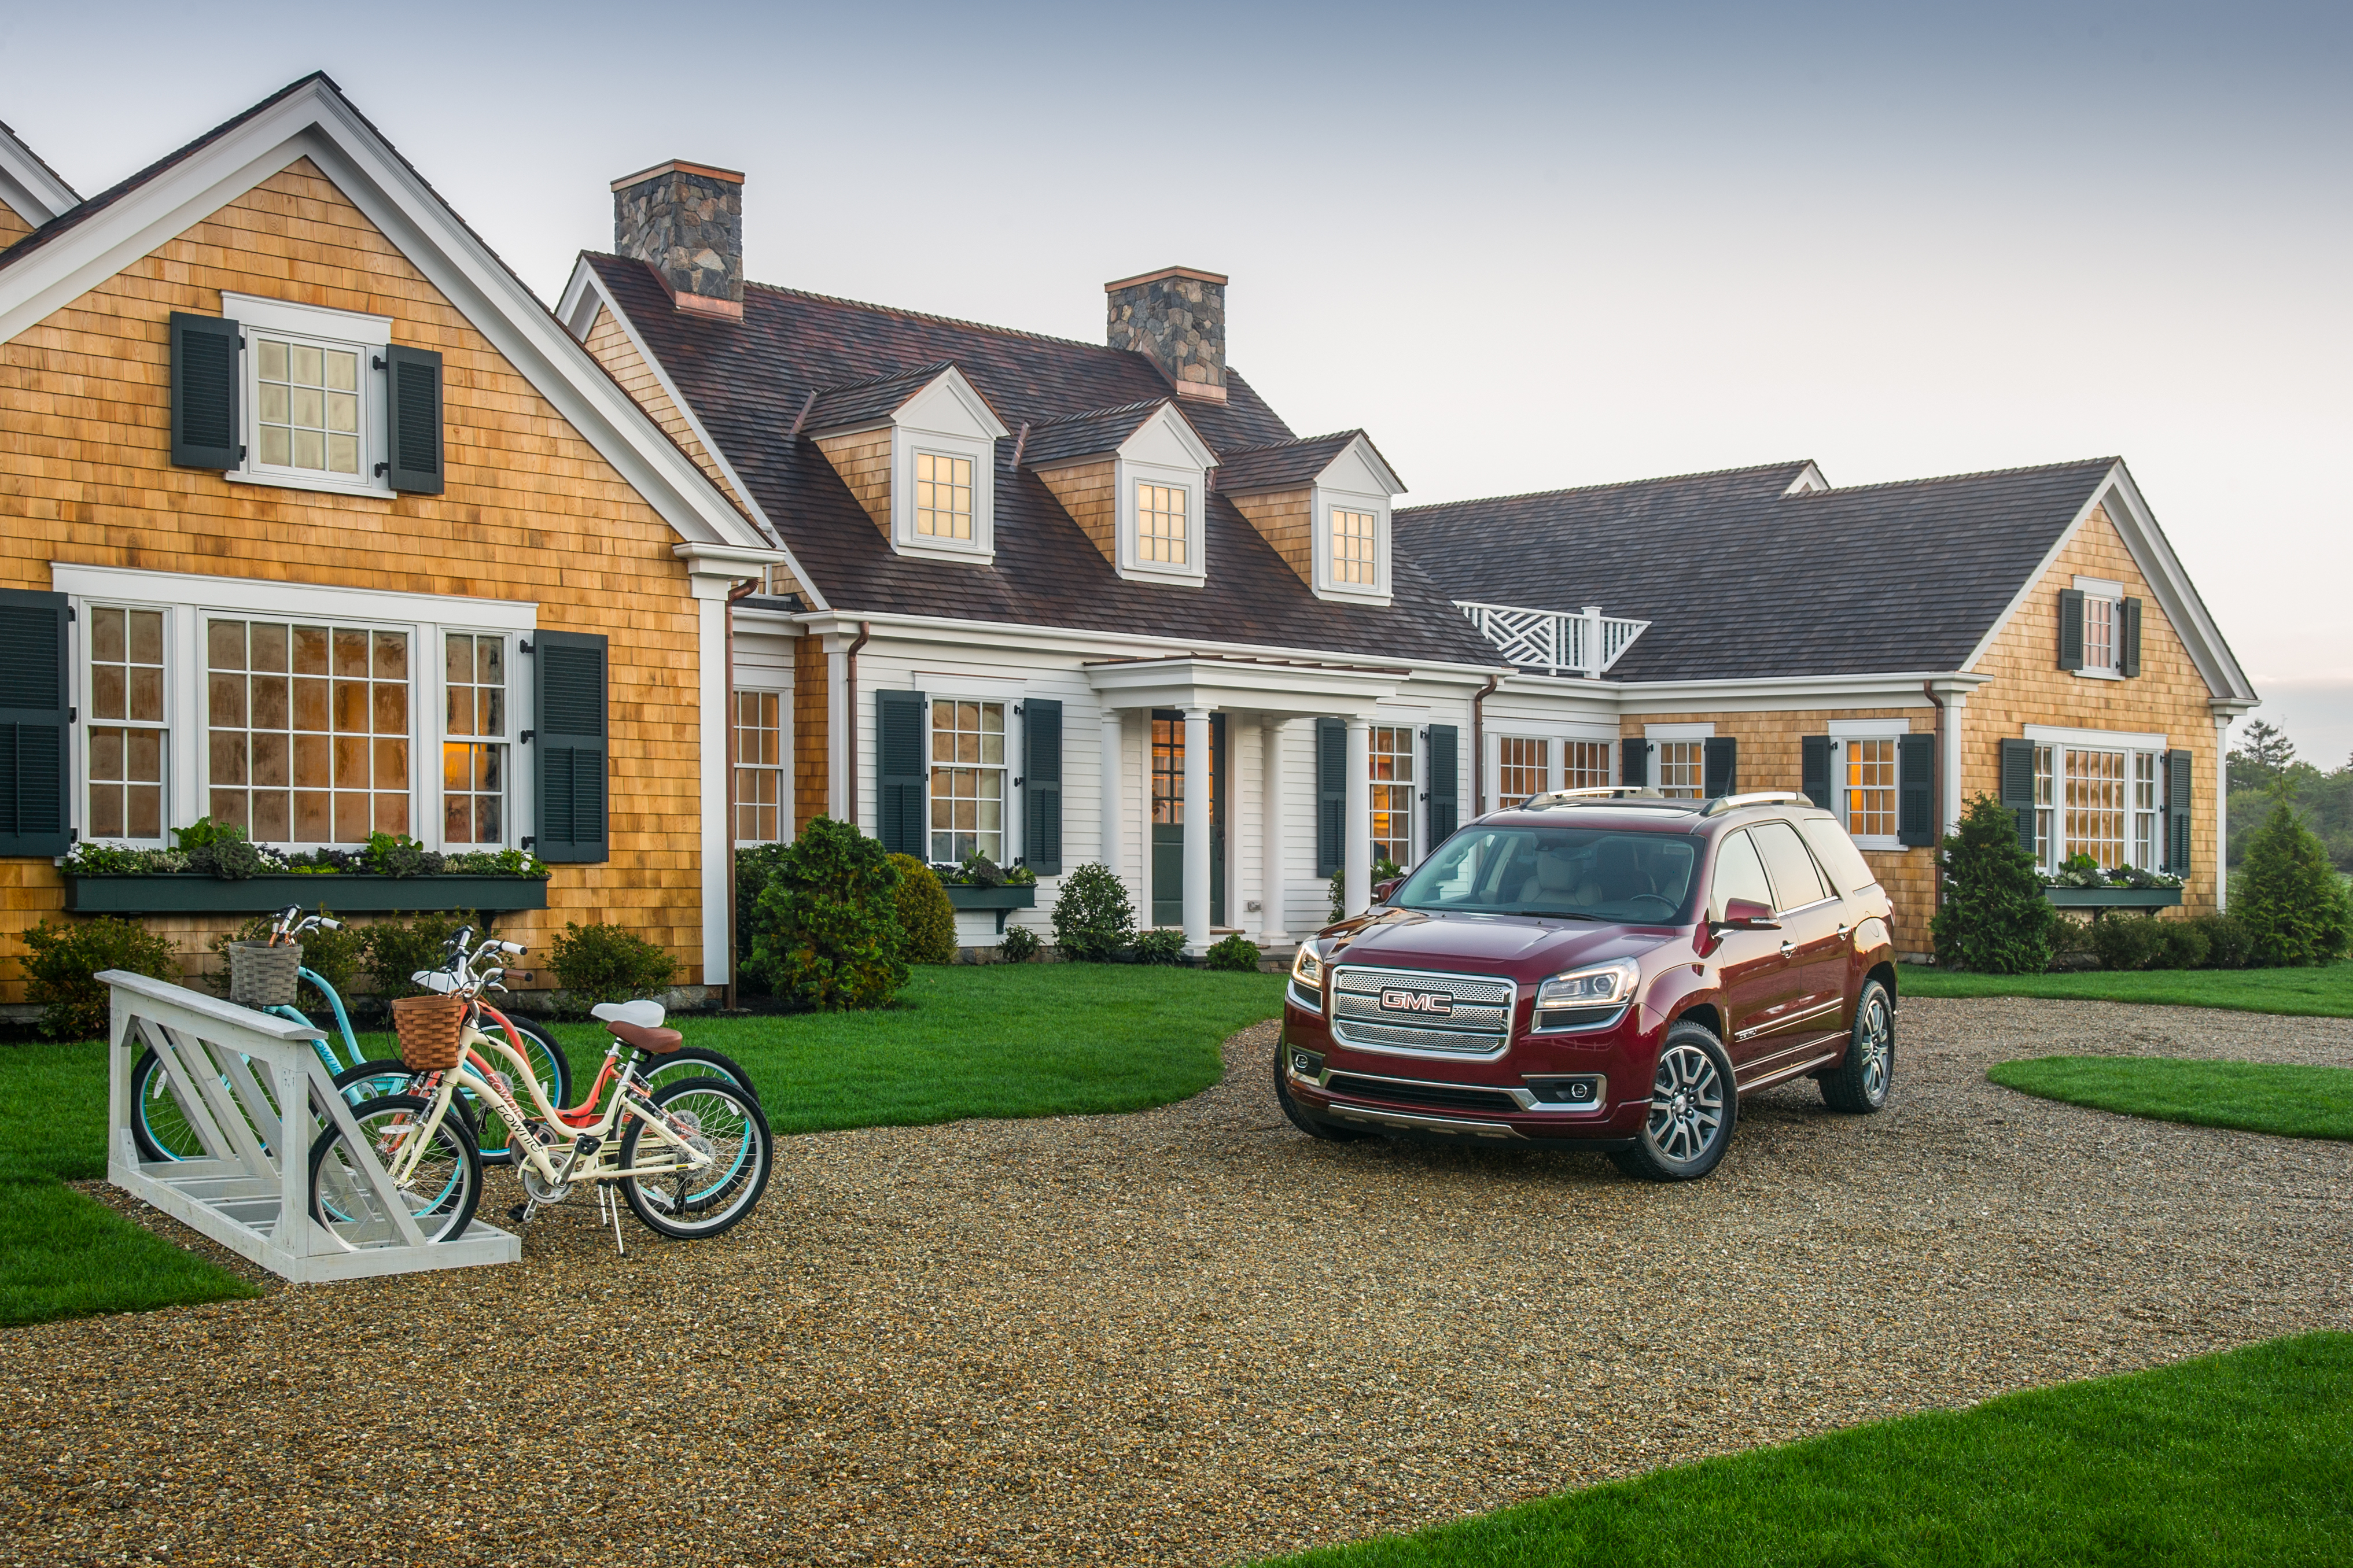 What to do if you win the hgtv dream home